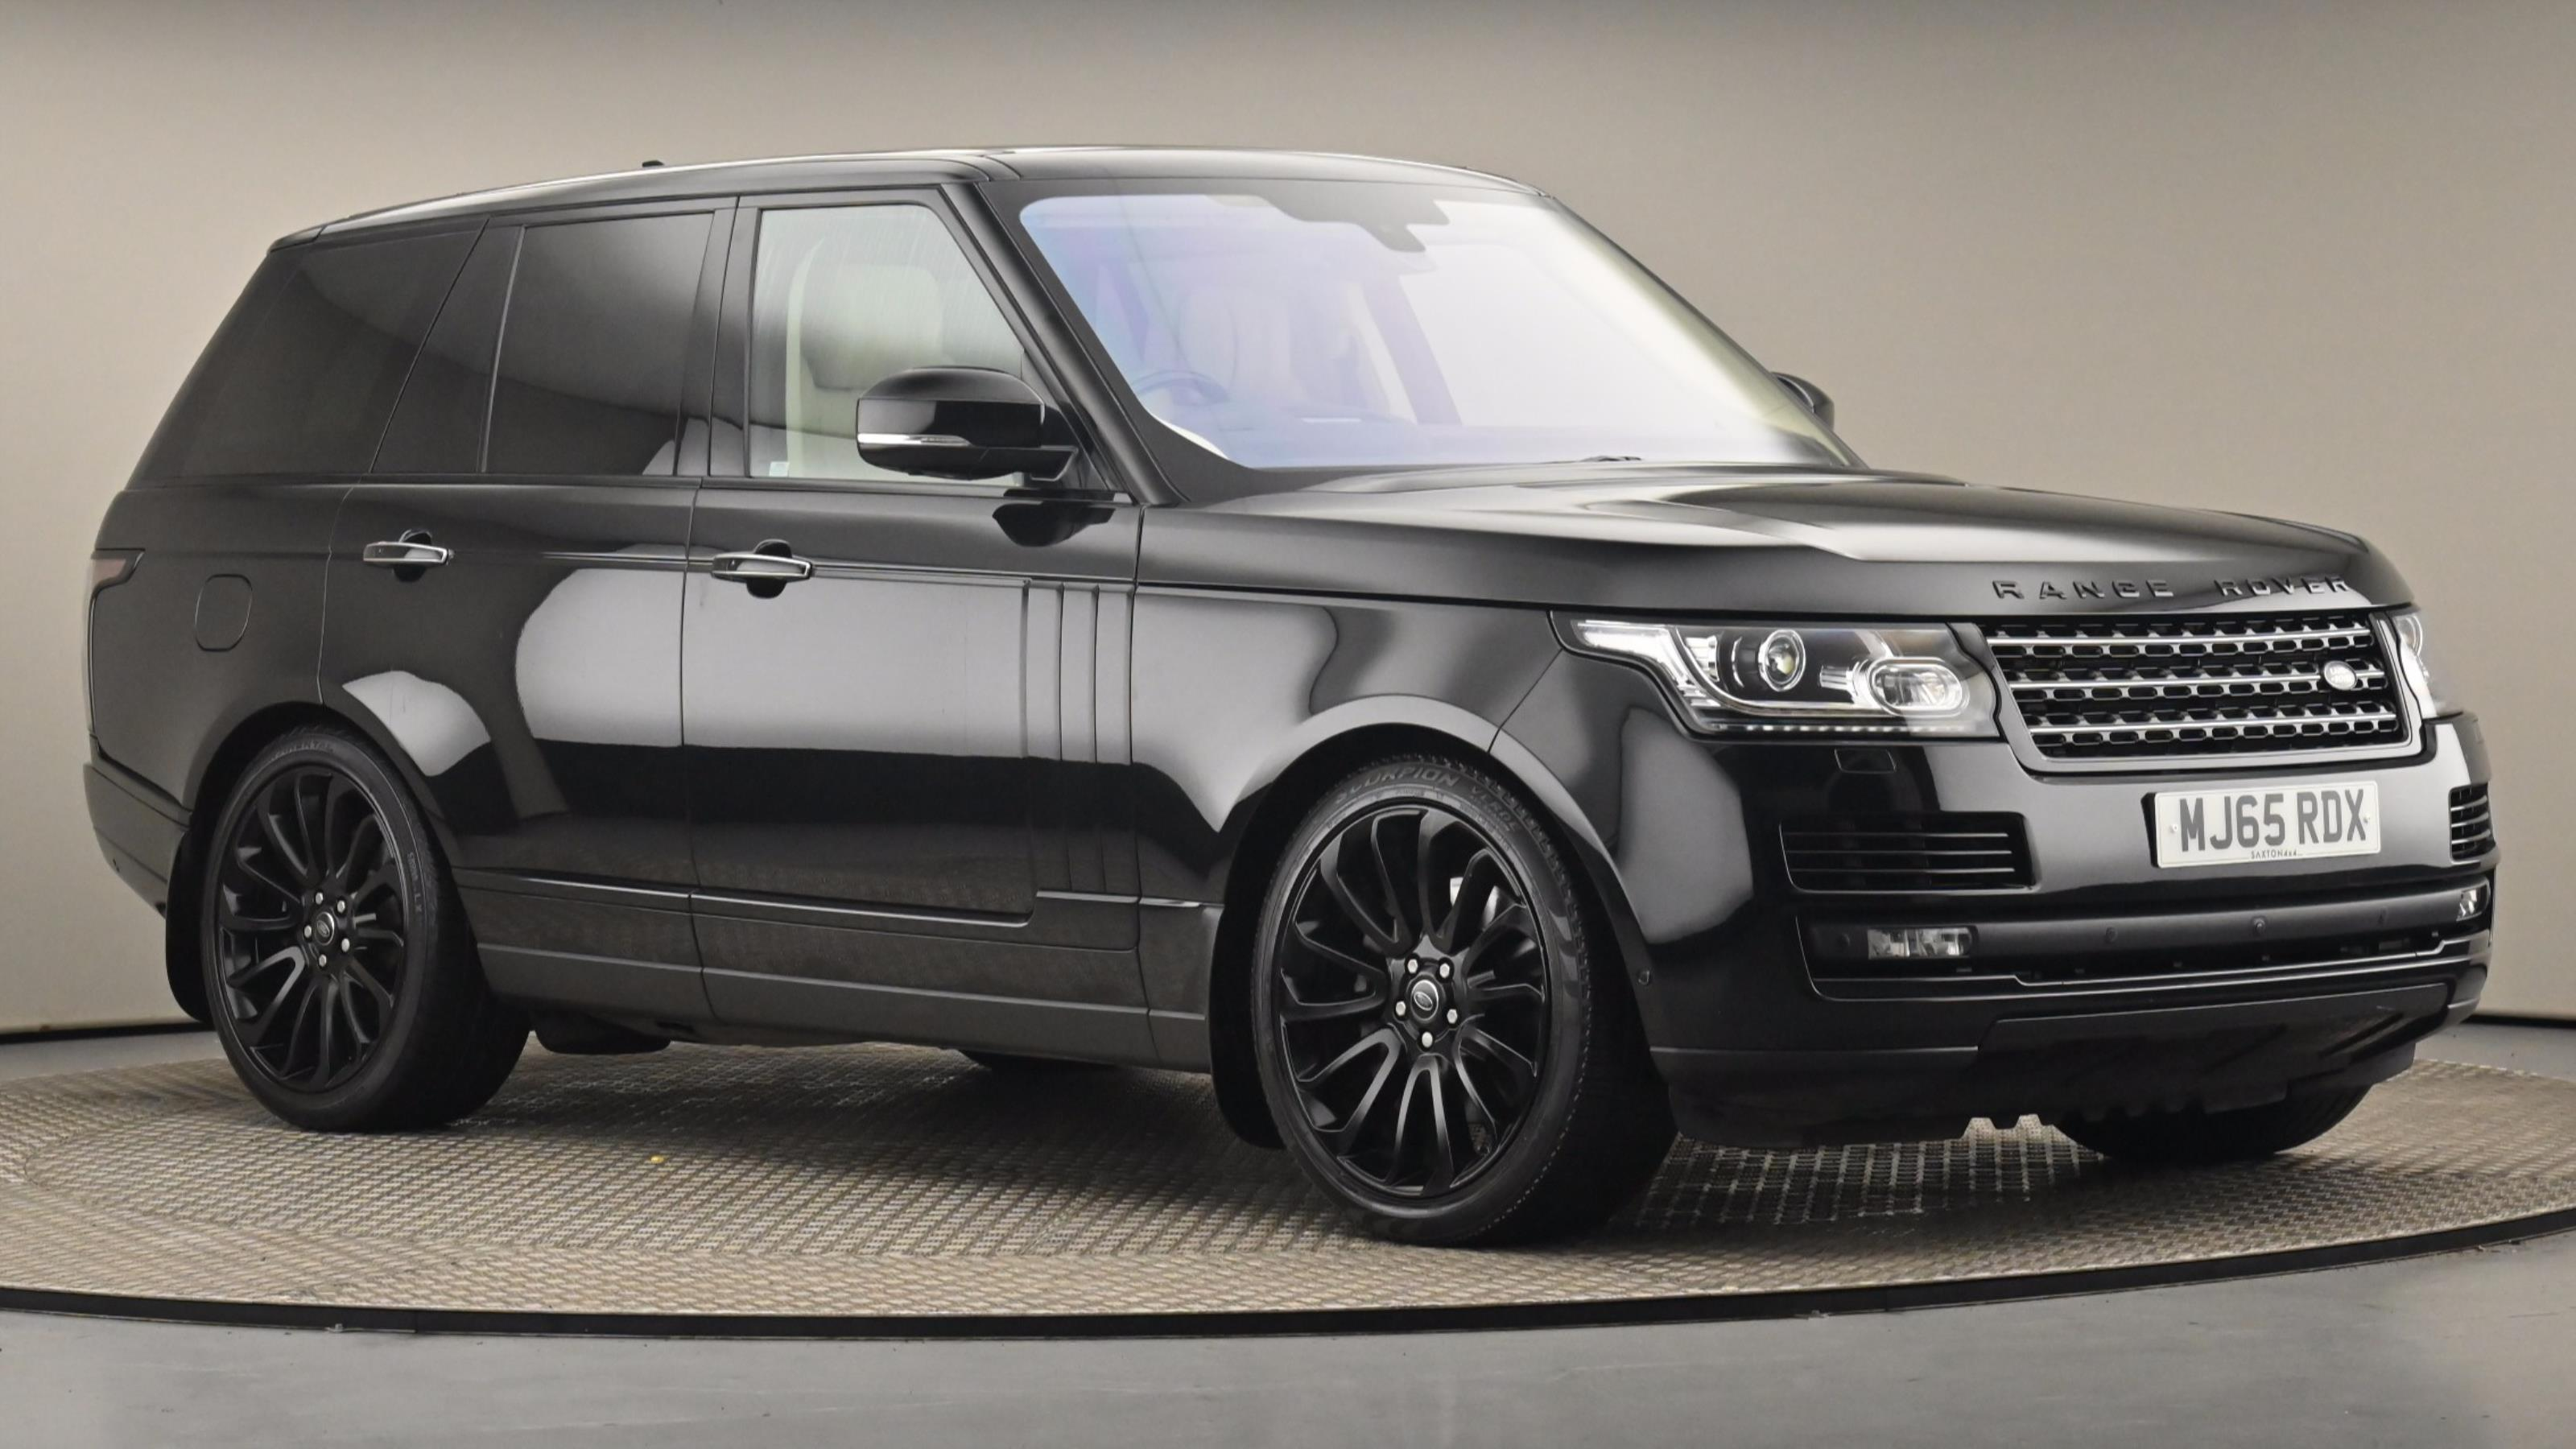 Used 2015 Land Rover RANGE ROVER 4.4 SDV8 Autobiography 4dr Auto at Saxton4x4